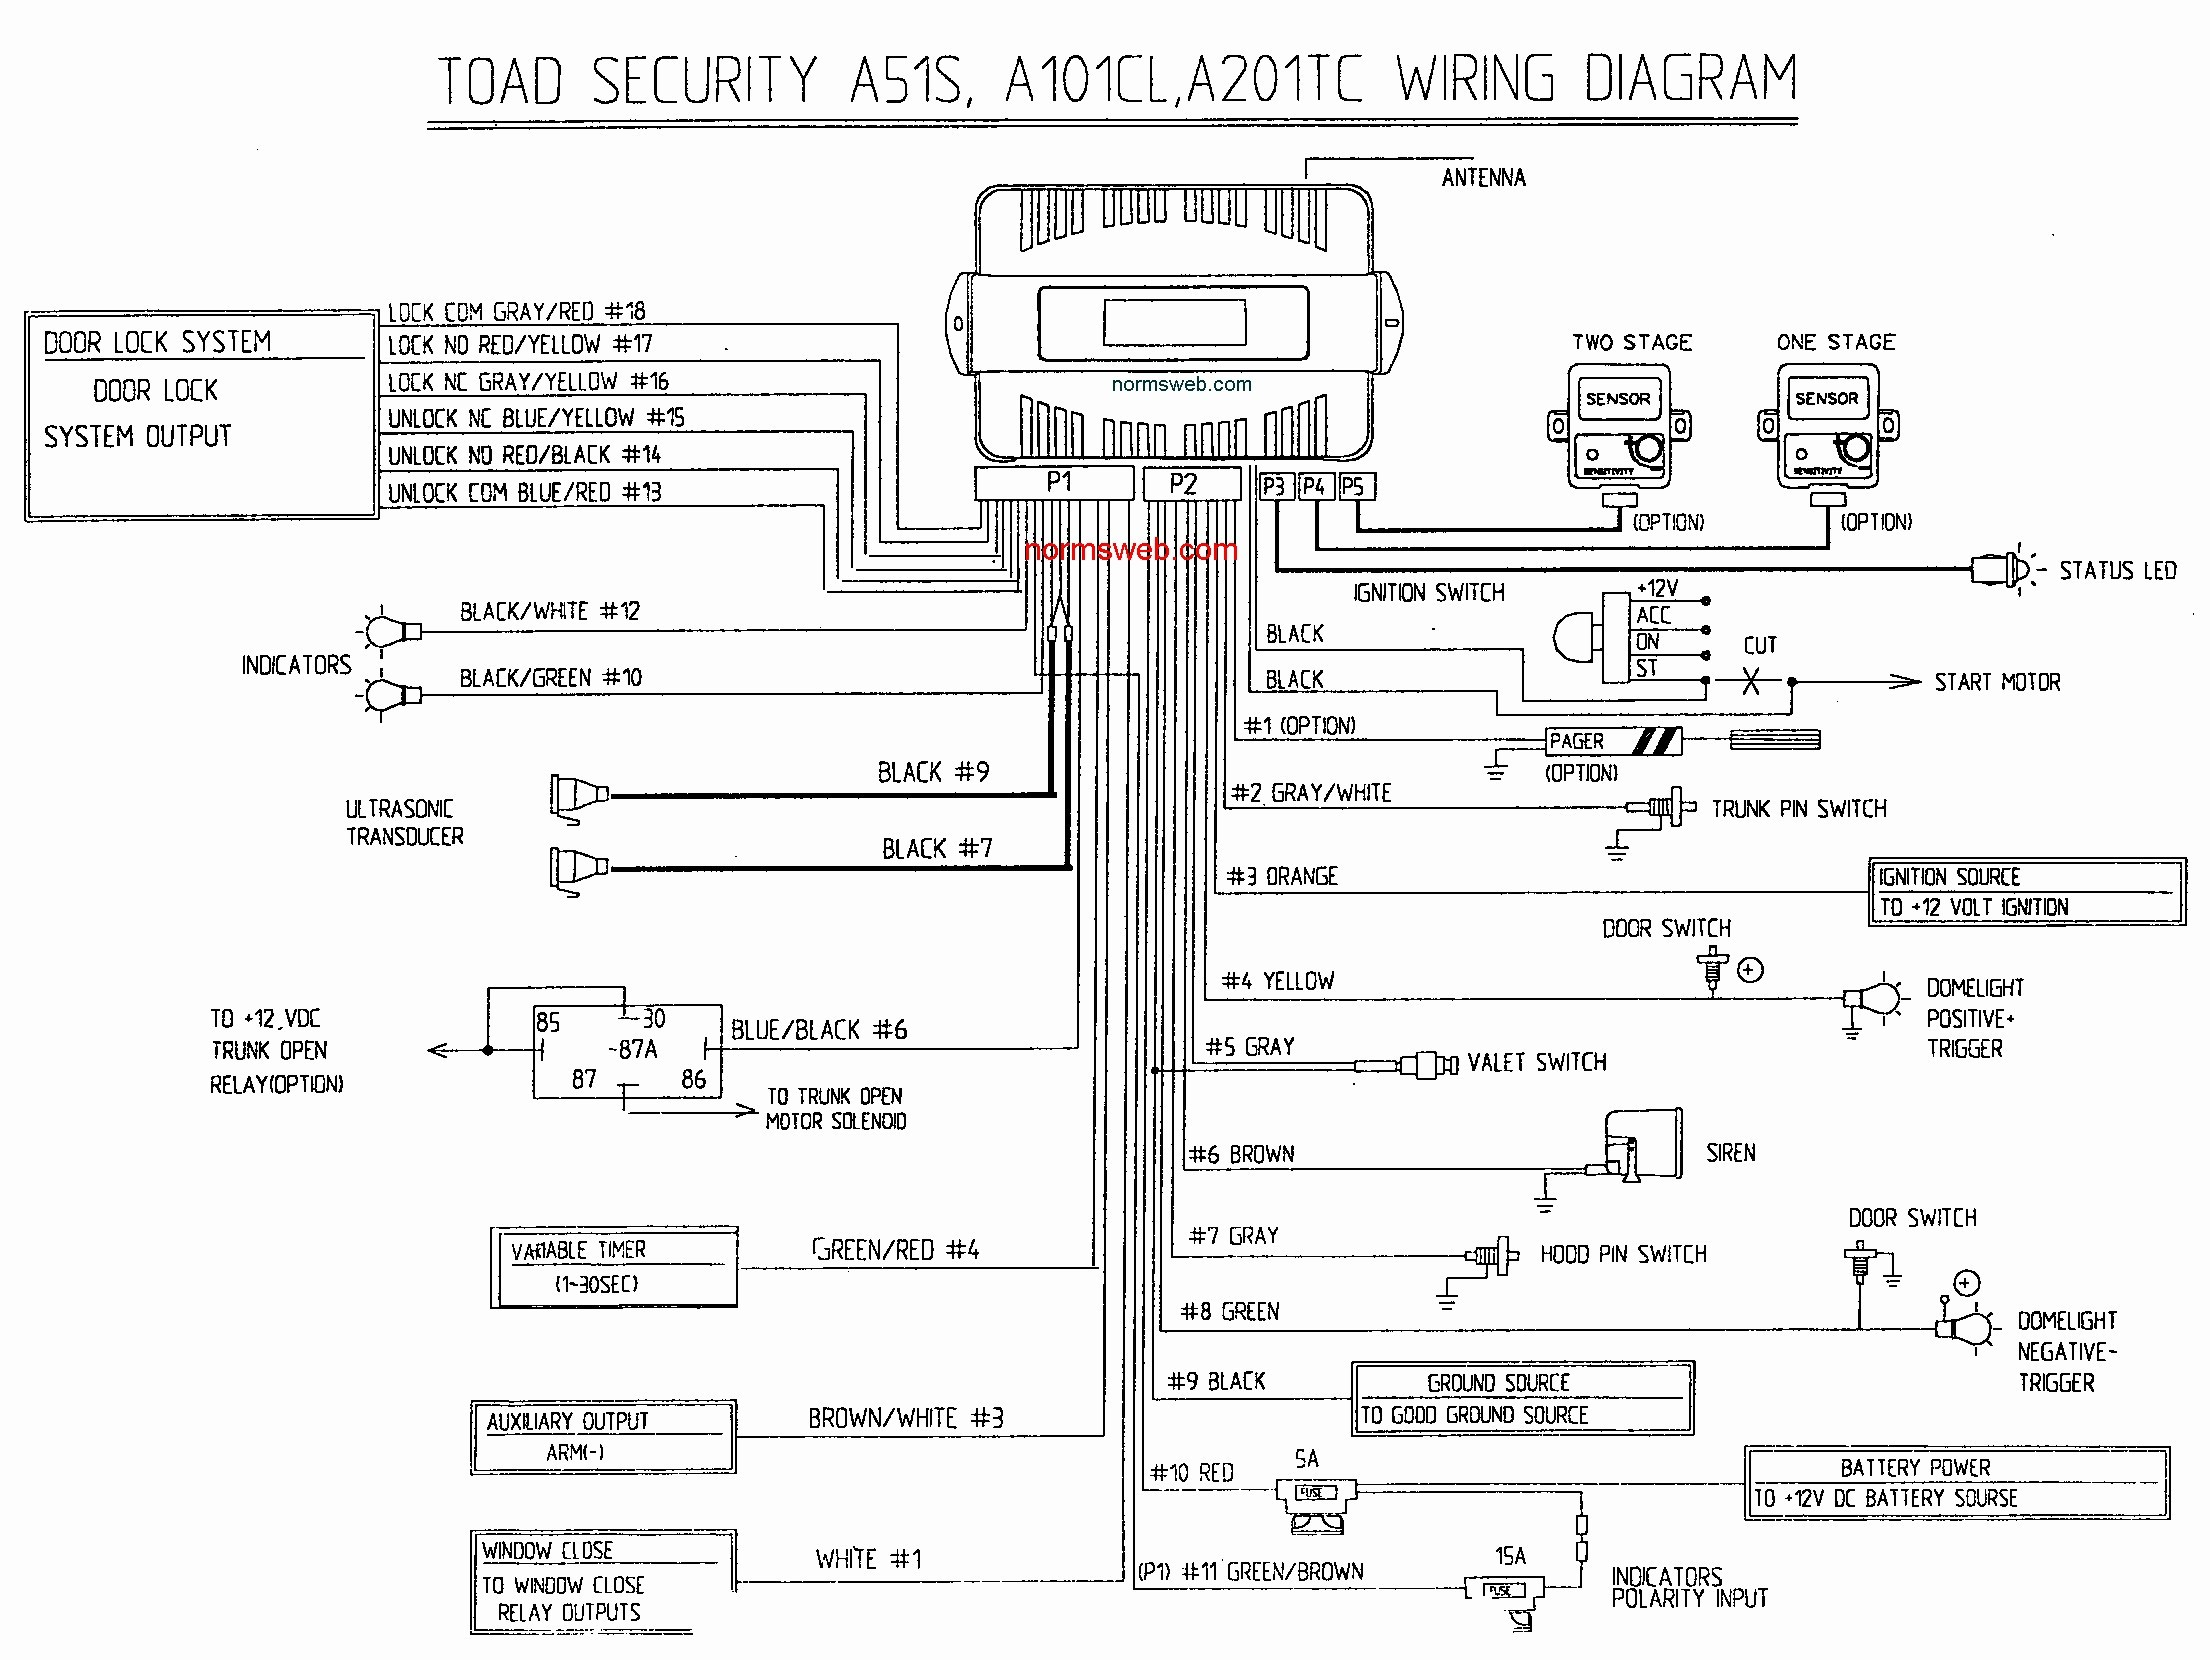 Bulldog Security Wiring Diagram Bulldog Security Alarm Wiring Diagram Gallery Of Bulldog Security Wiring Diagram